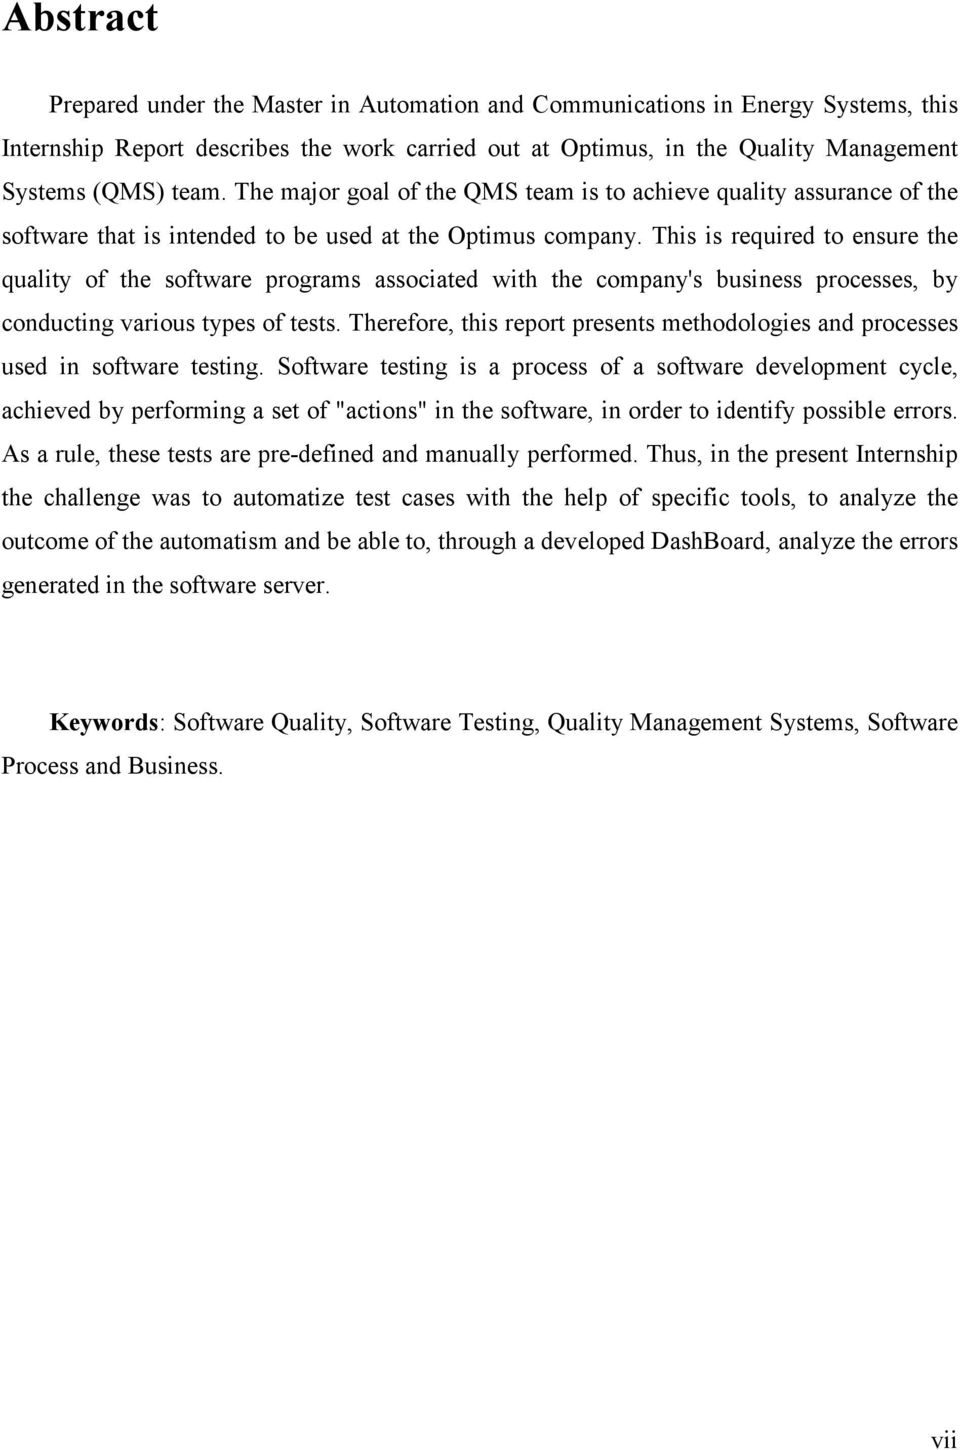 This is required to ensure the quality of the software programs associated with the company's business processes, by conducting various types of tests.